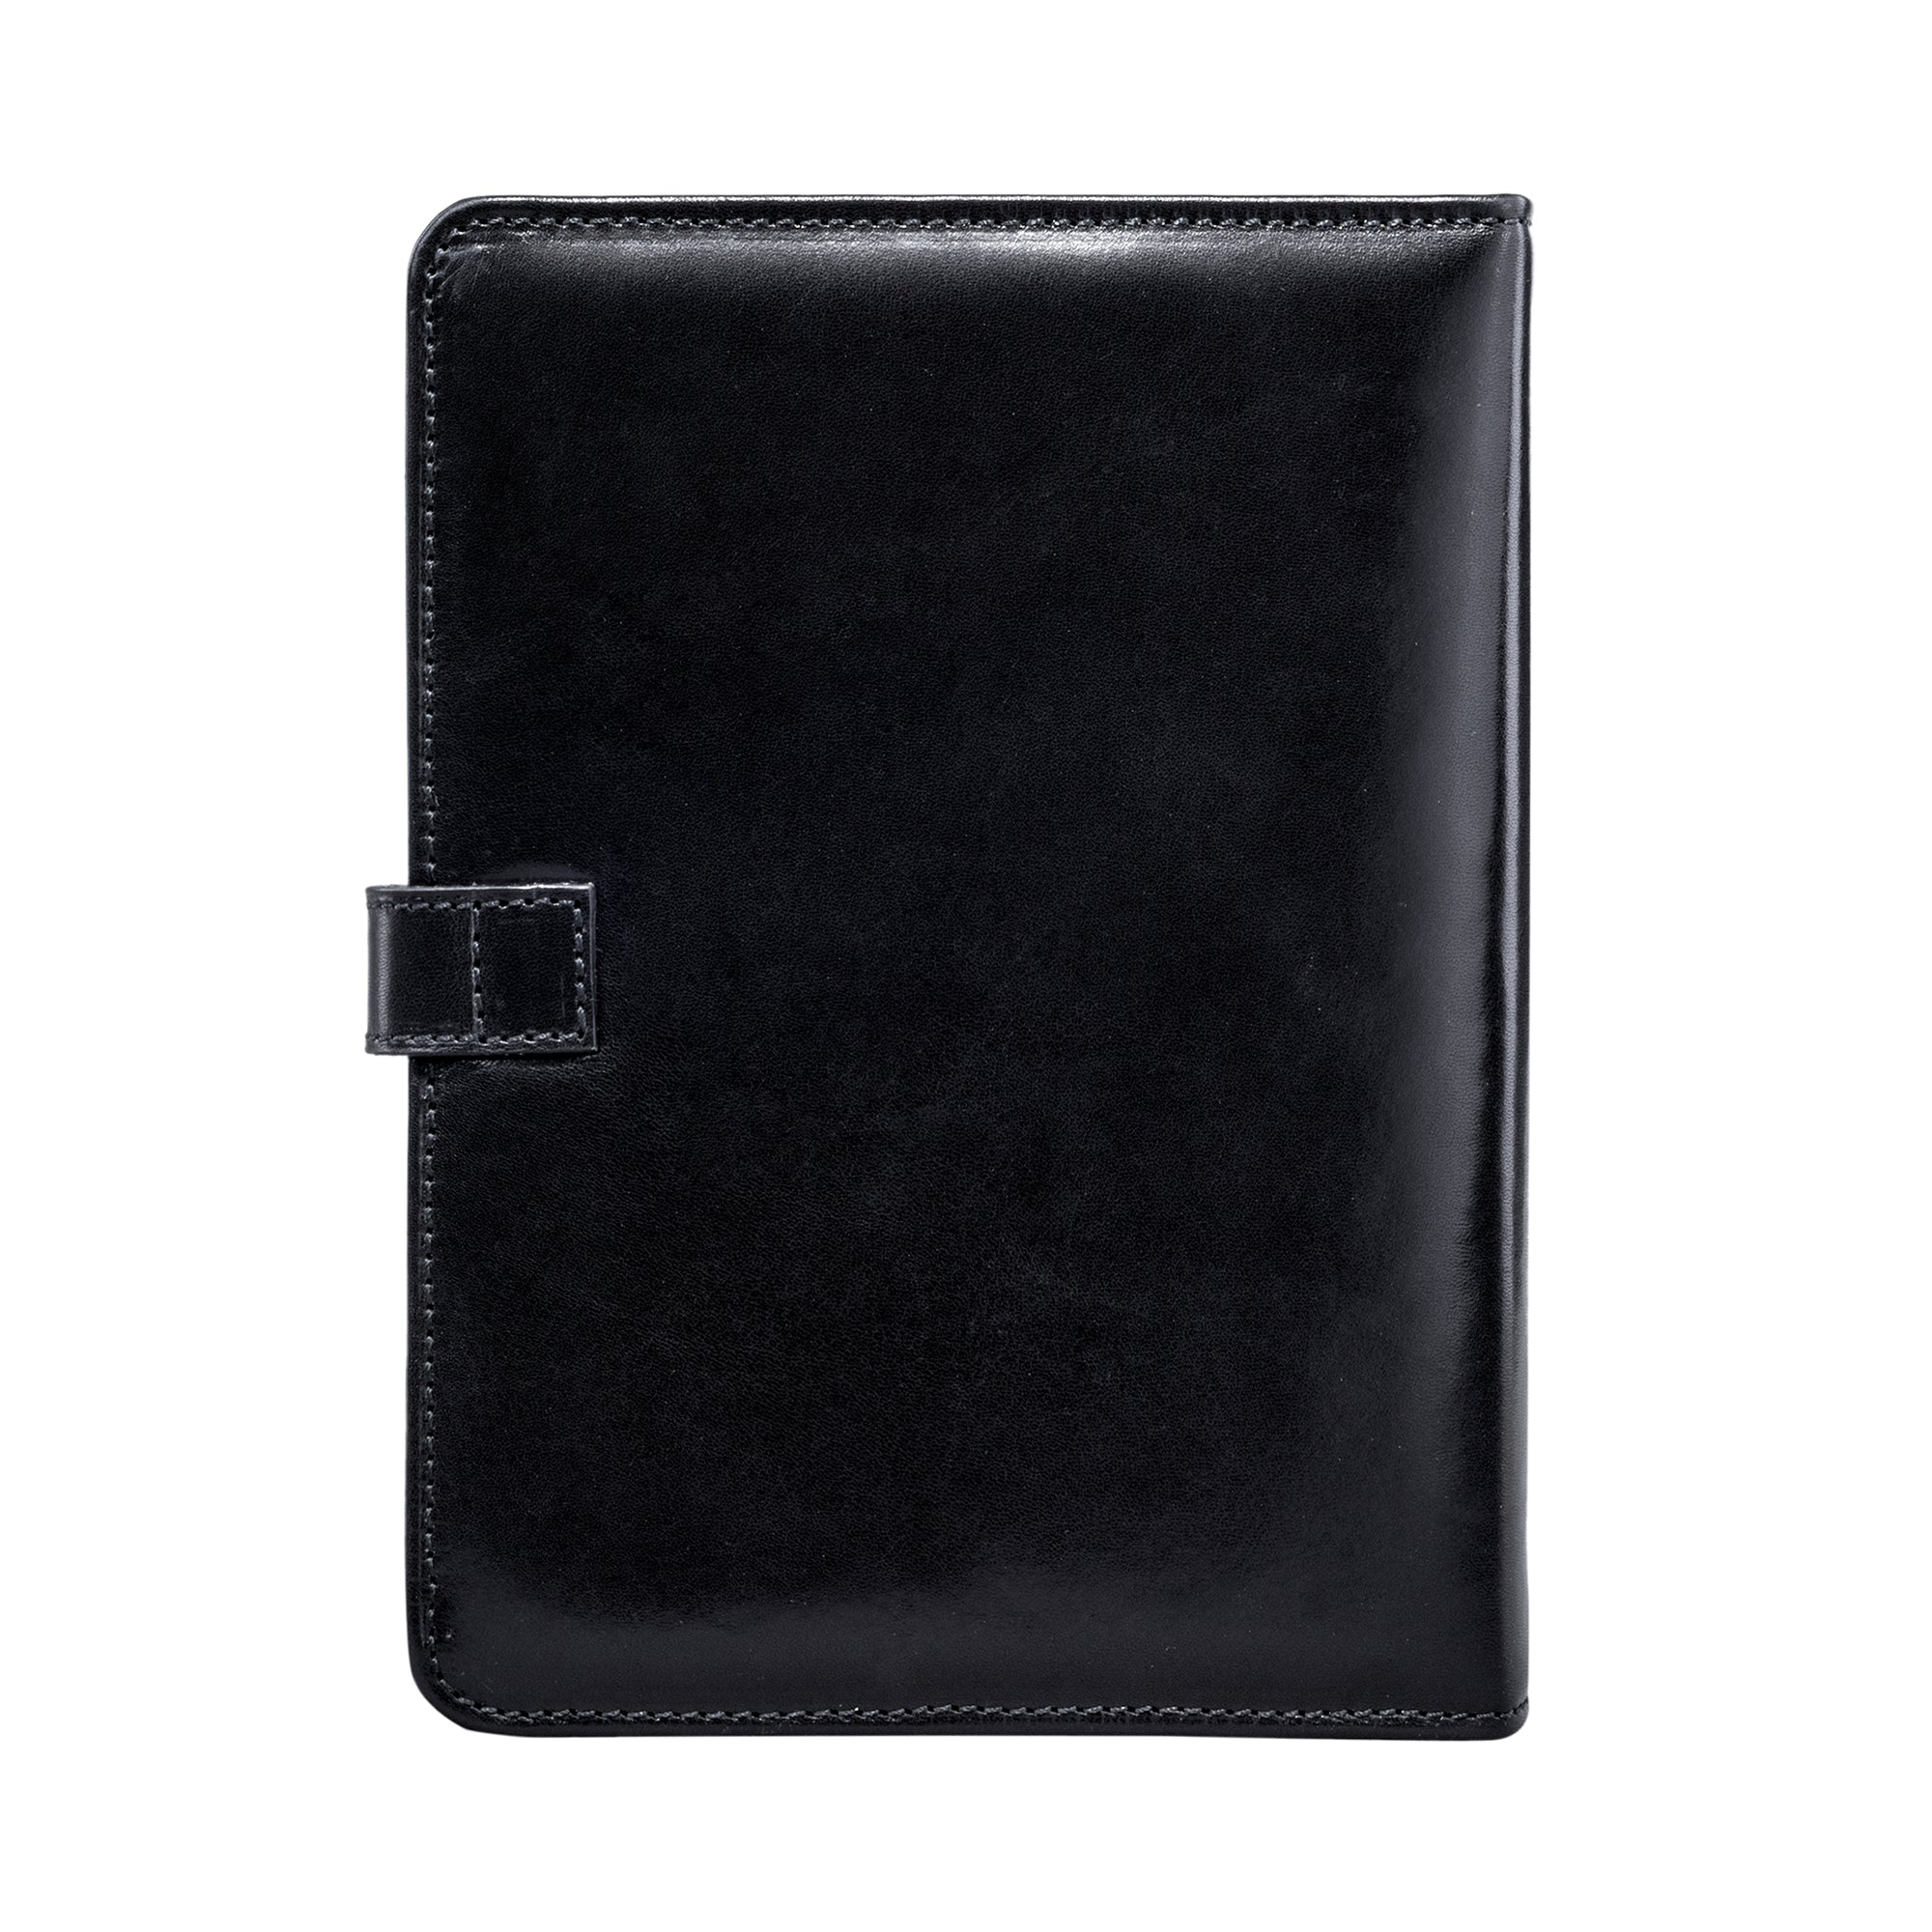 Image 4 of the Black Leather Address Book